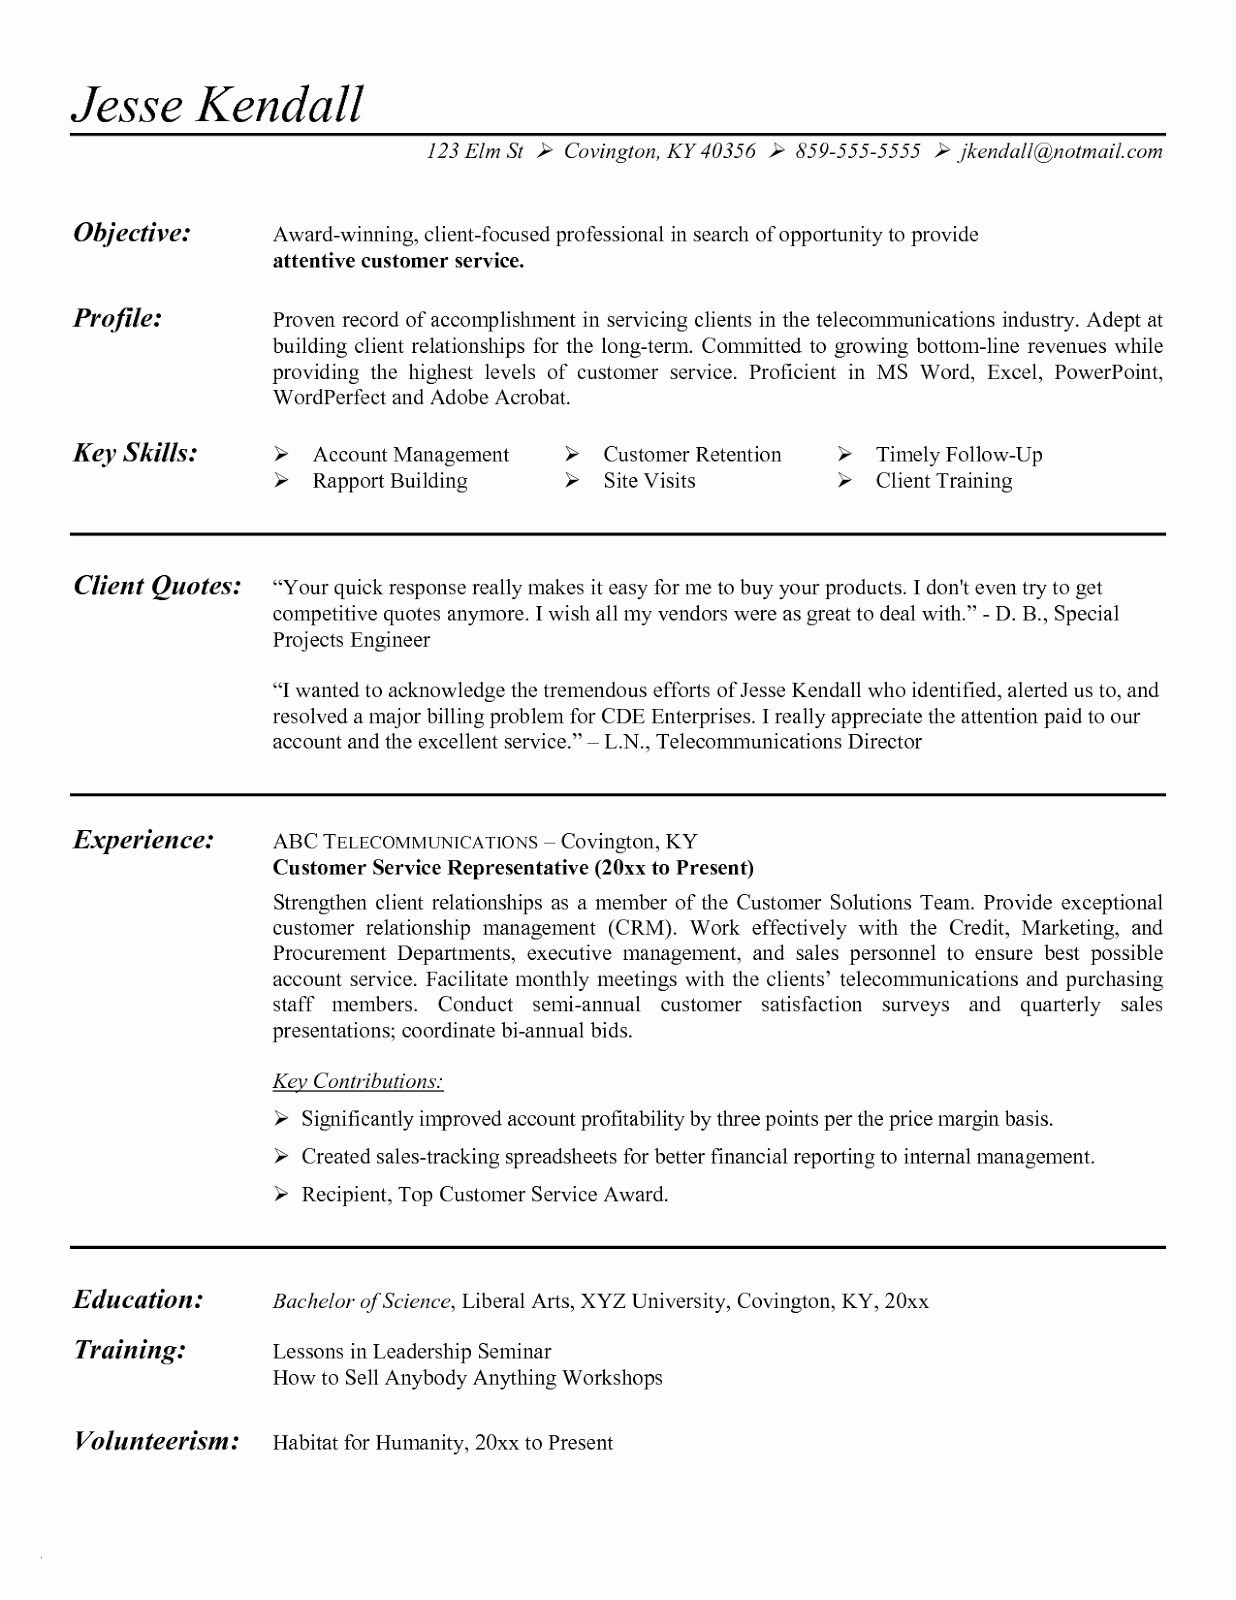 Resume Template for Pharmacy Technician - Pharmacy Technician Job Duties Resume Example Pharmacist Resume